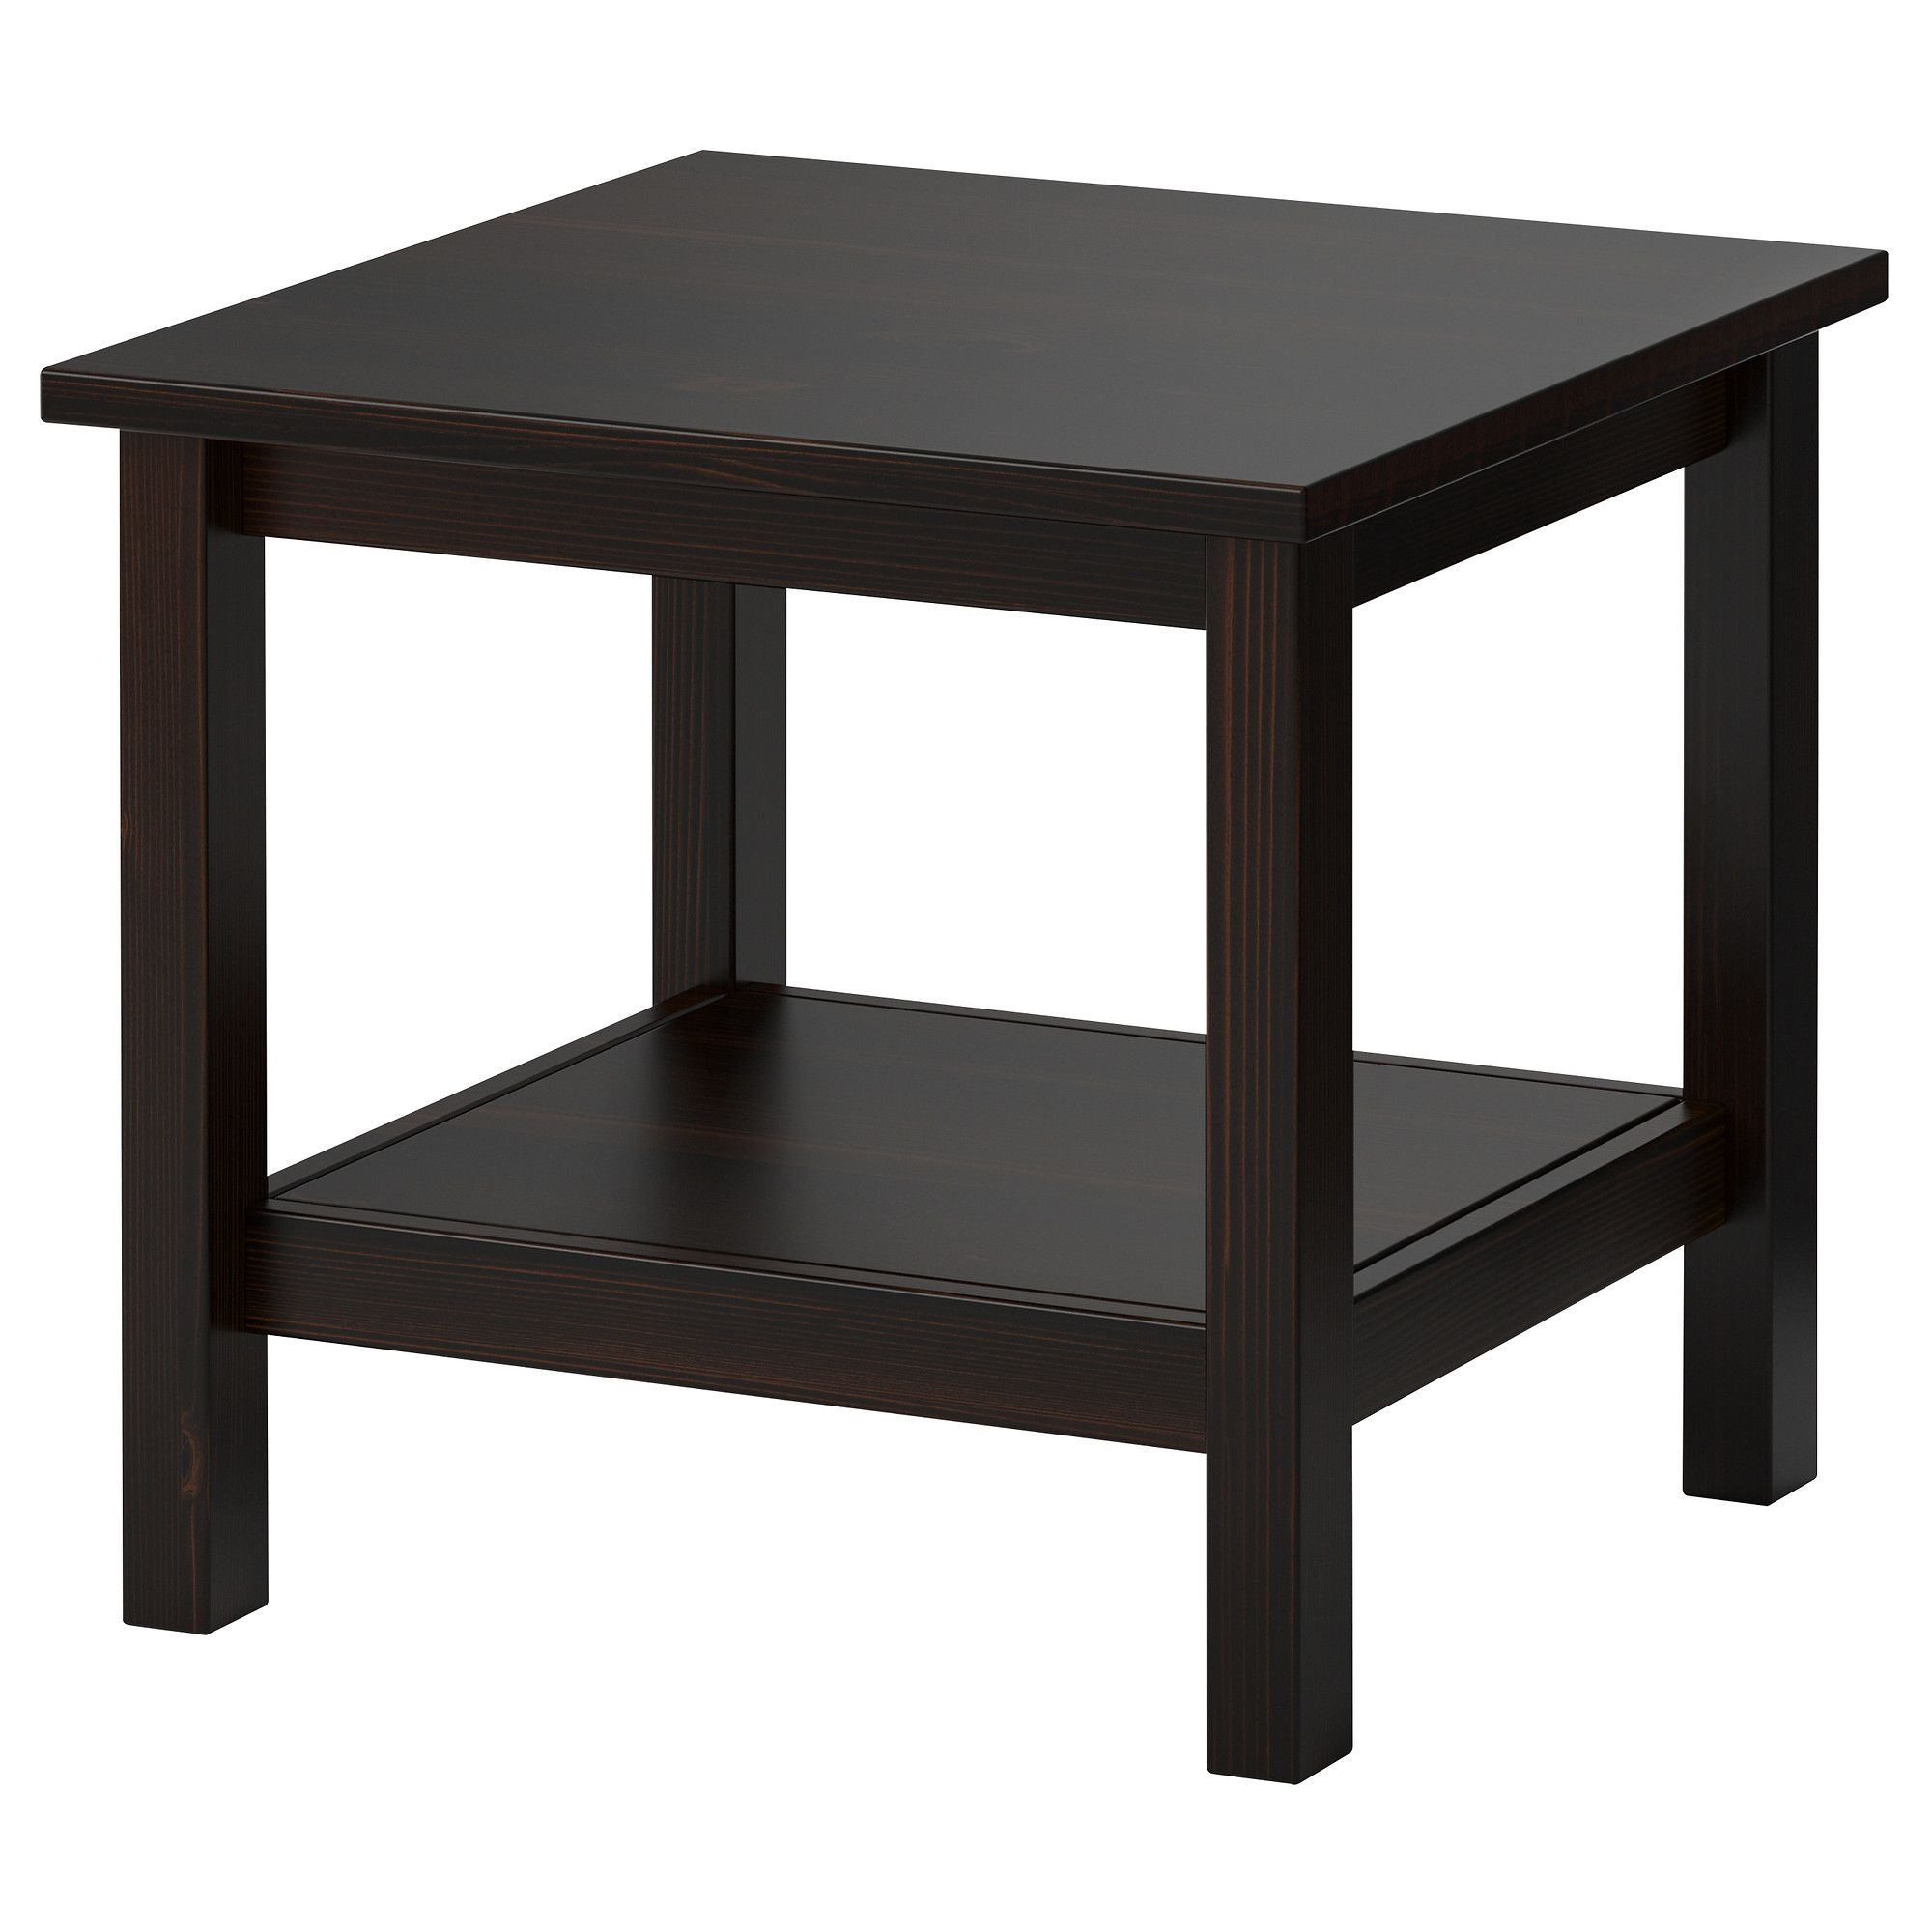 hemnes side table - black-brown - ikea | for the home | pinterest